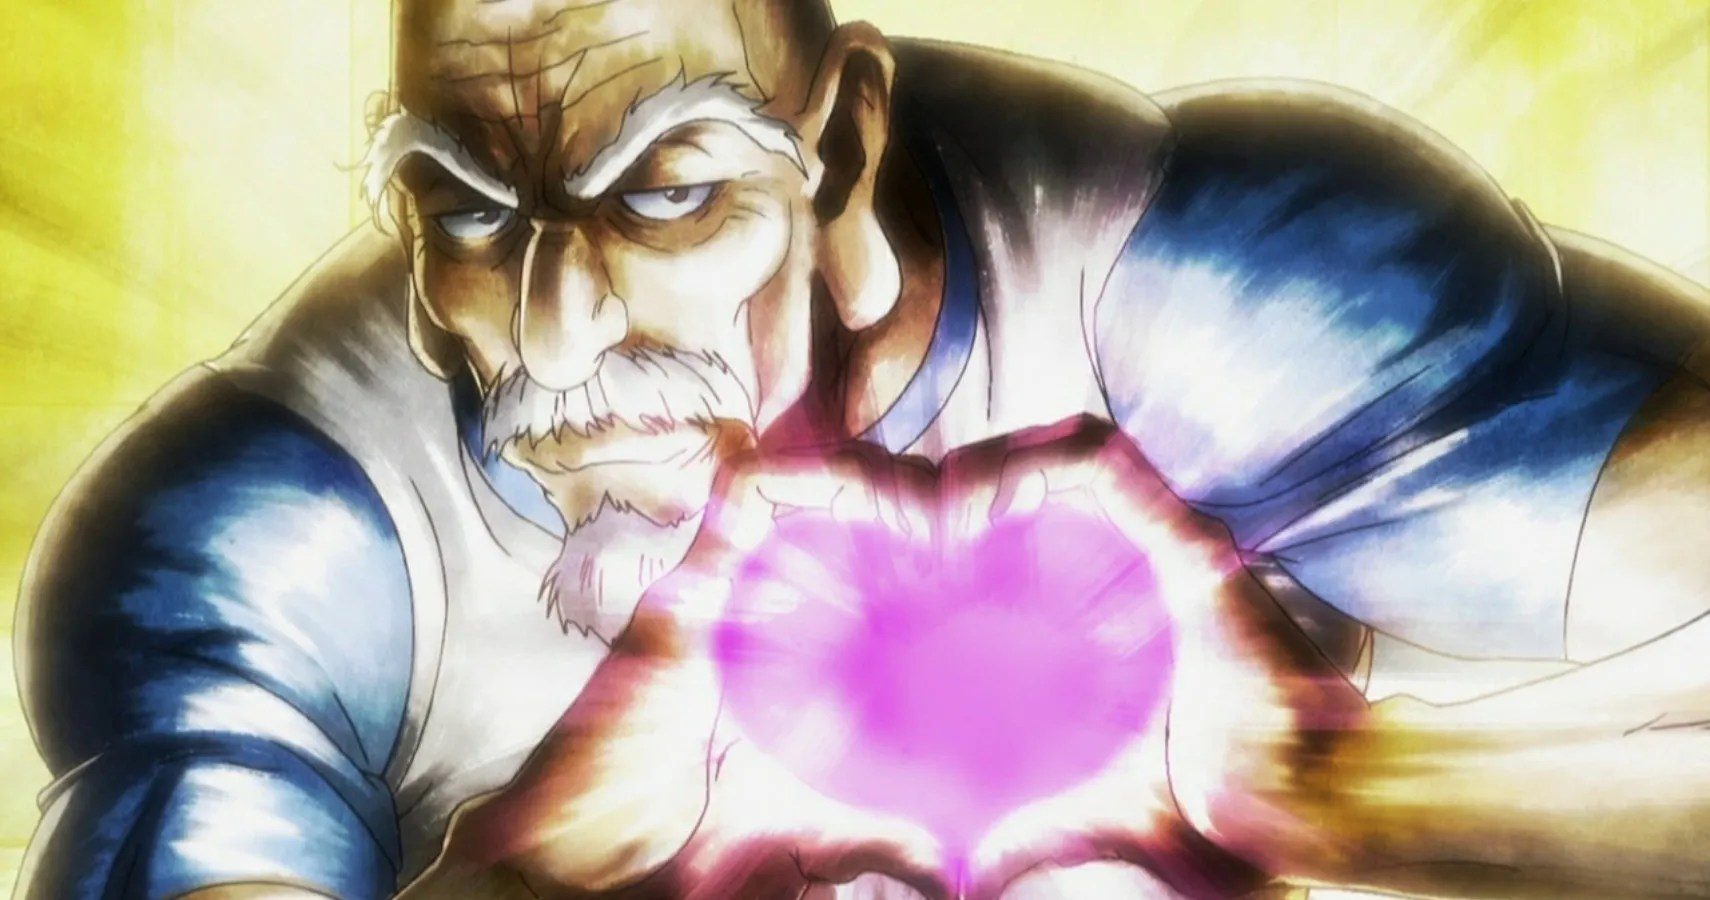 Chimera ant queen/image gallery · wiki targeted (entertainment) · appearance · images · images · 2011 · hunter × hunter battle collection · sr cards · puppets. Hunter X Hunter: 10 Facts You Should Know About Isaac Netero